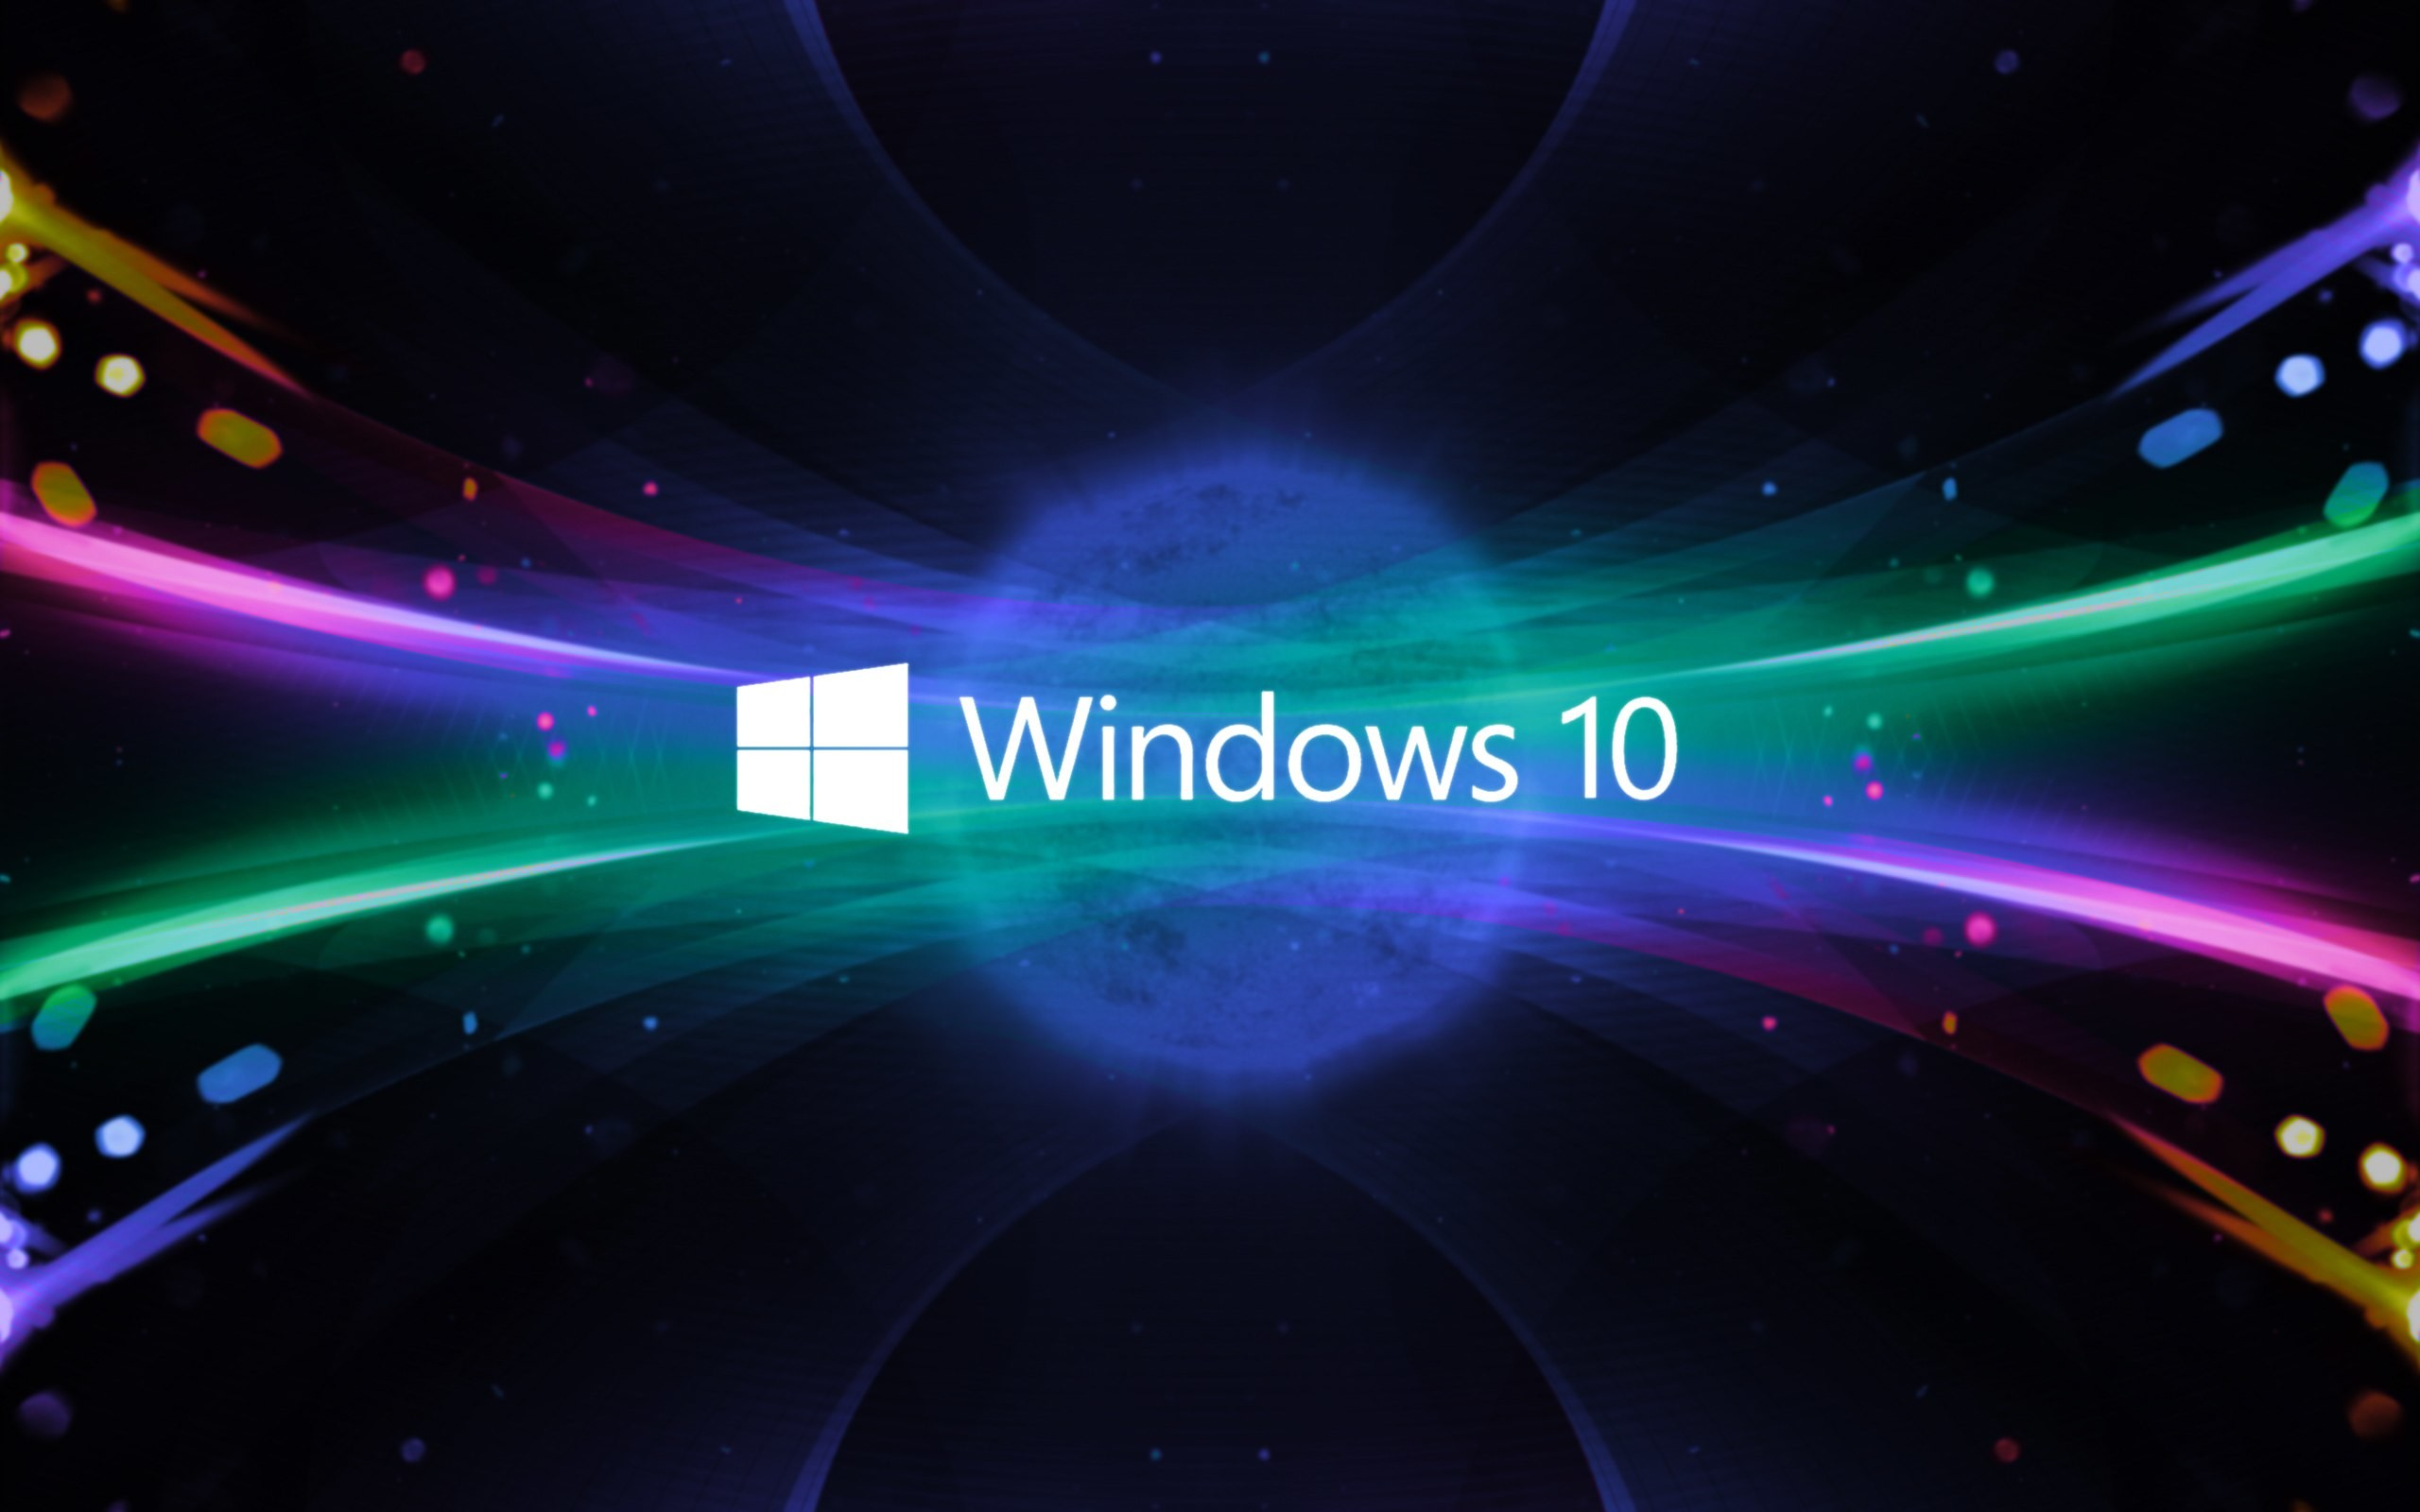 Windows 10 Futuristic Wallpaper 70 Images